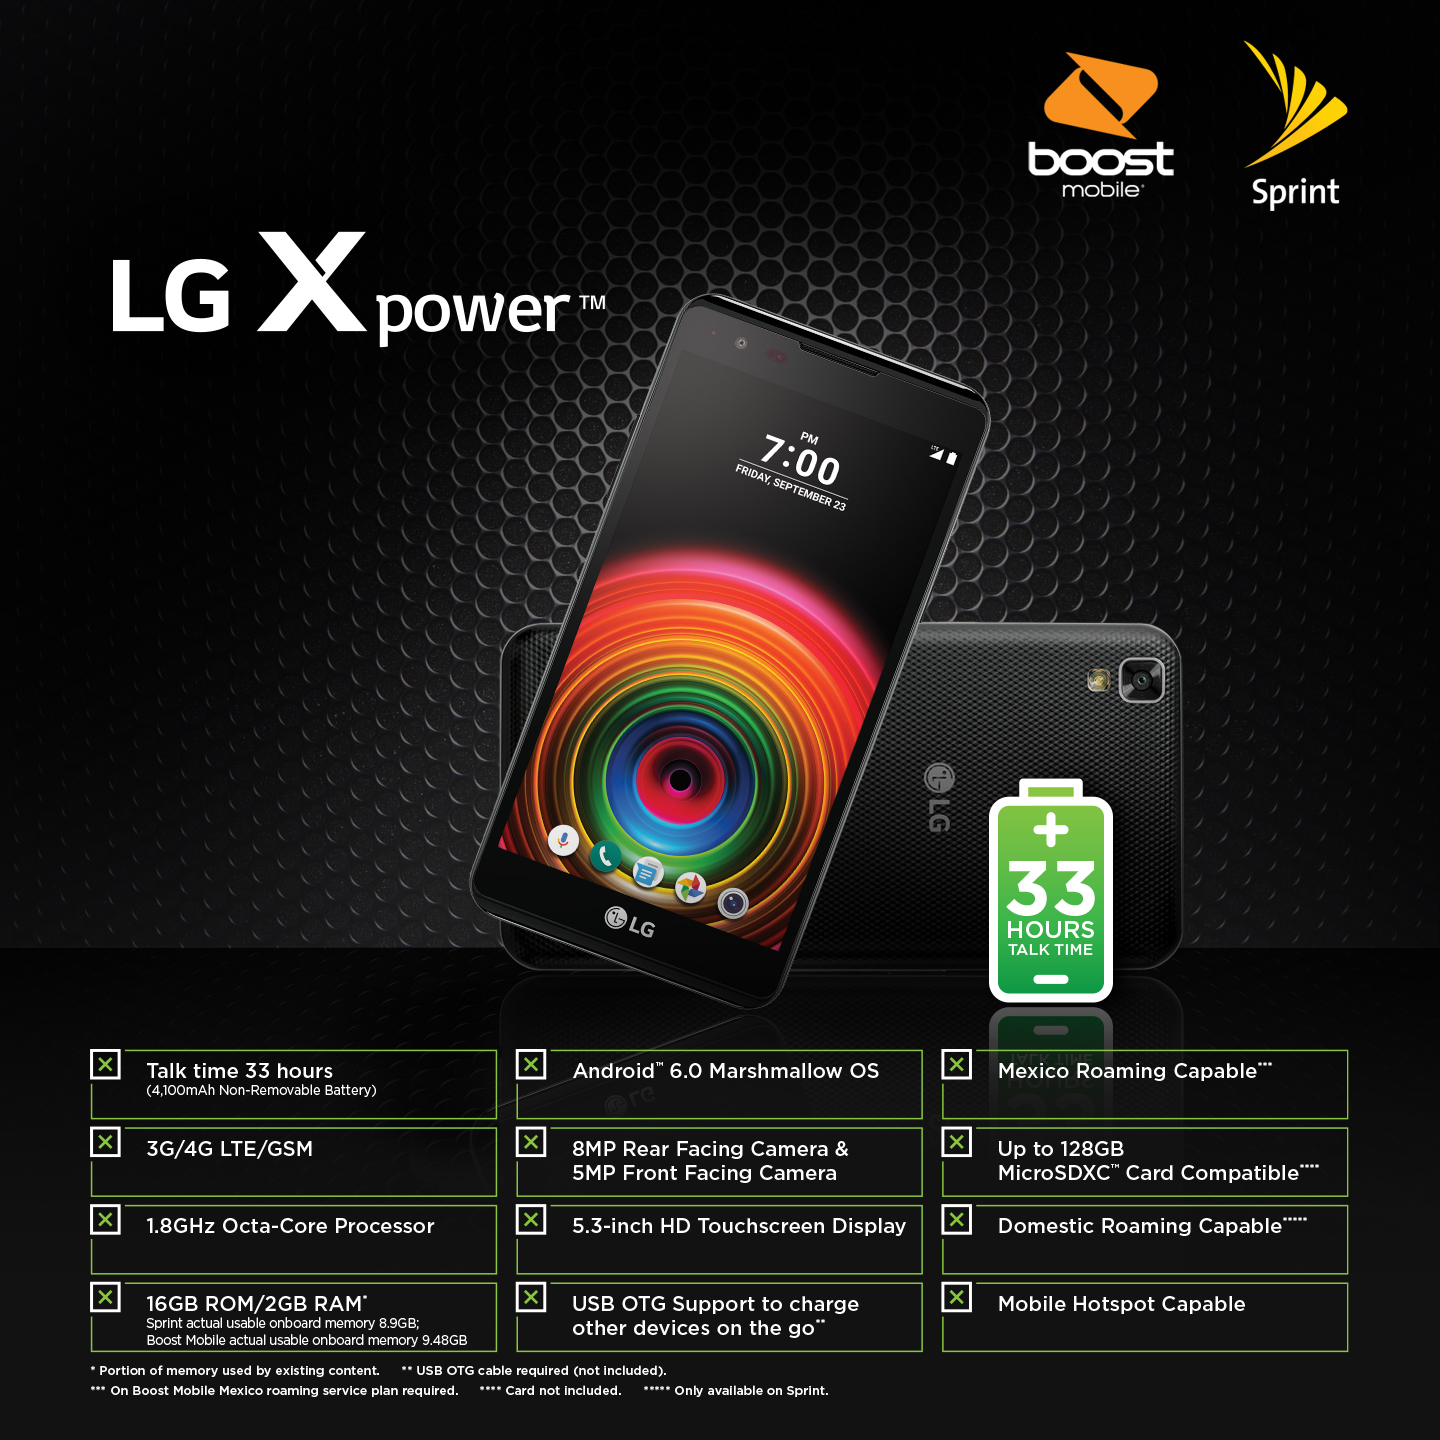 LG launches Sprint and Boost Mobile's first MediaTek-equipped device